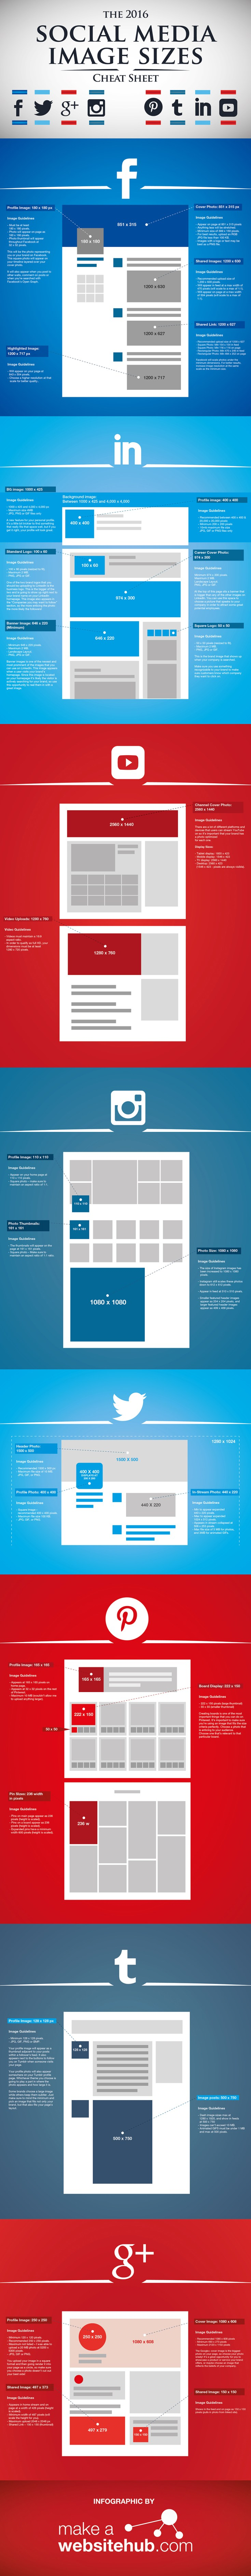 Social Media Images Sizes cheat sheet 2016